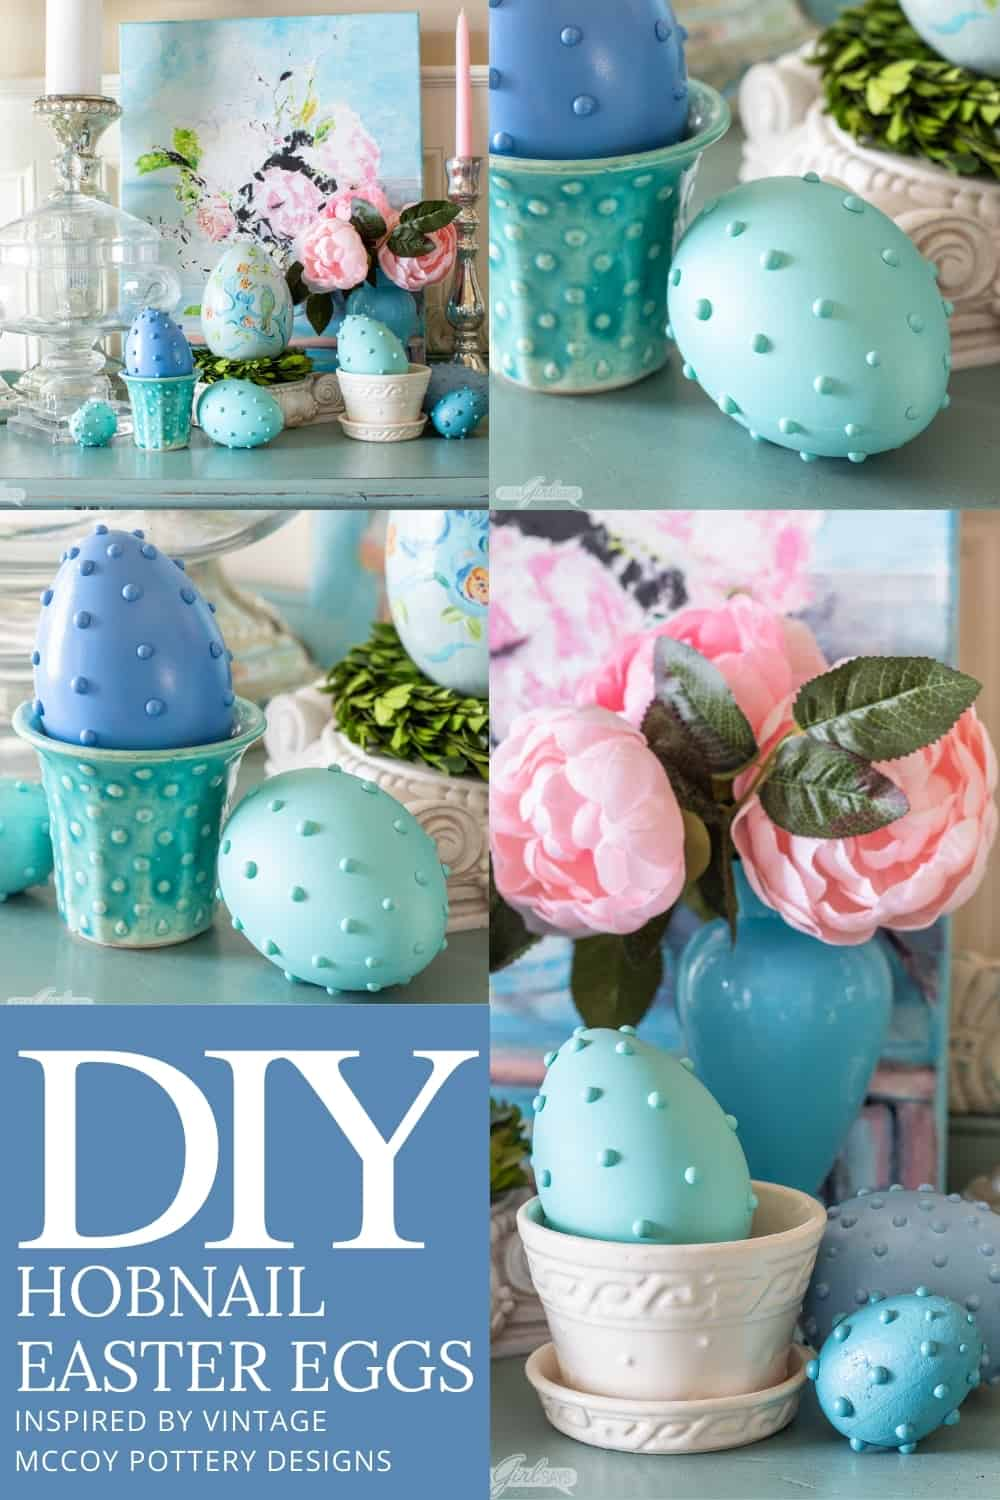 collage photos of pastel Easter eggs with vintage McCoy pottery